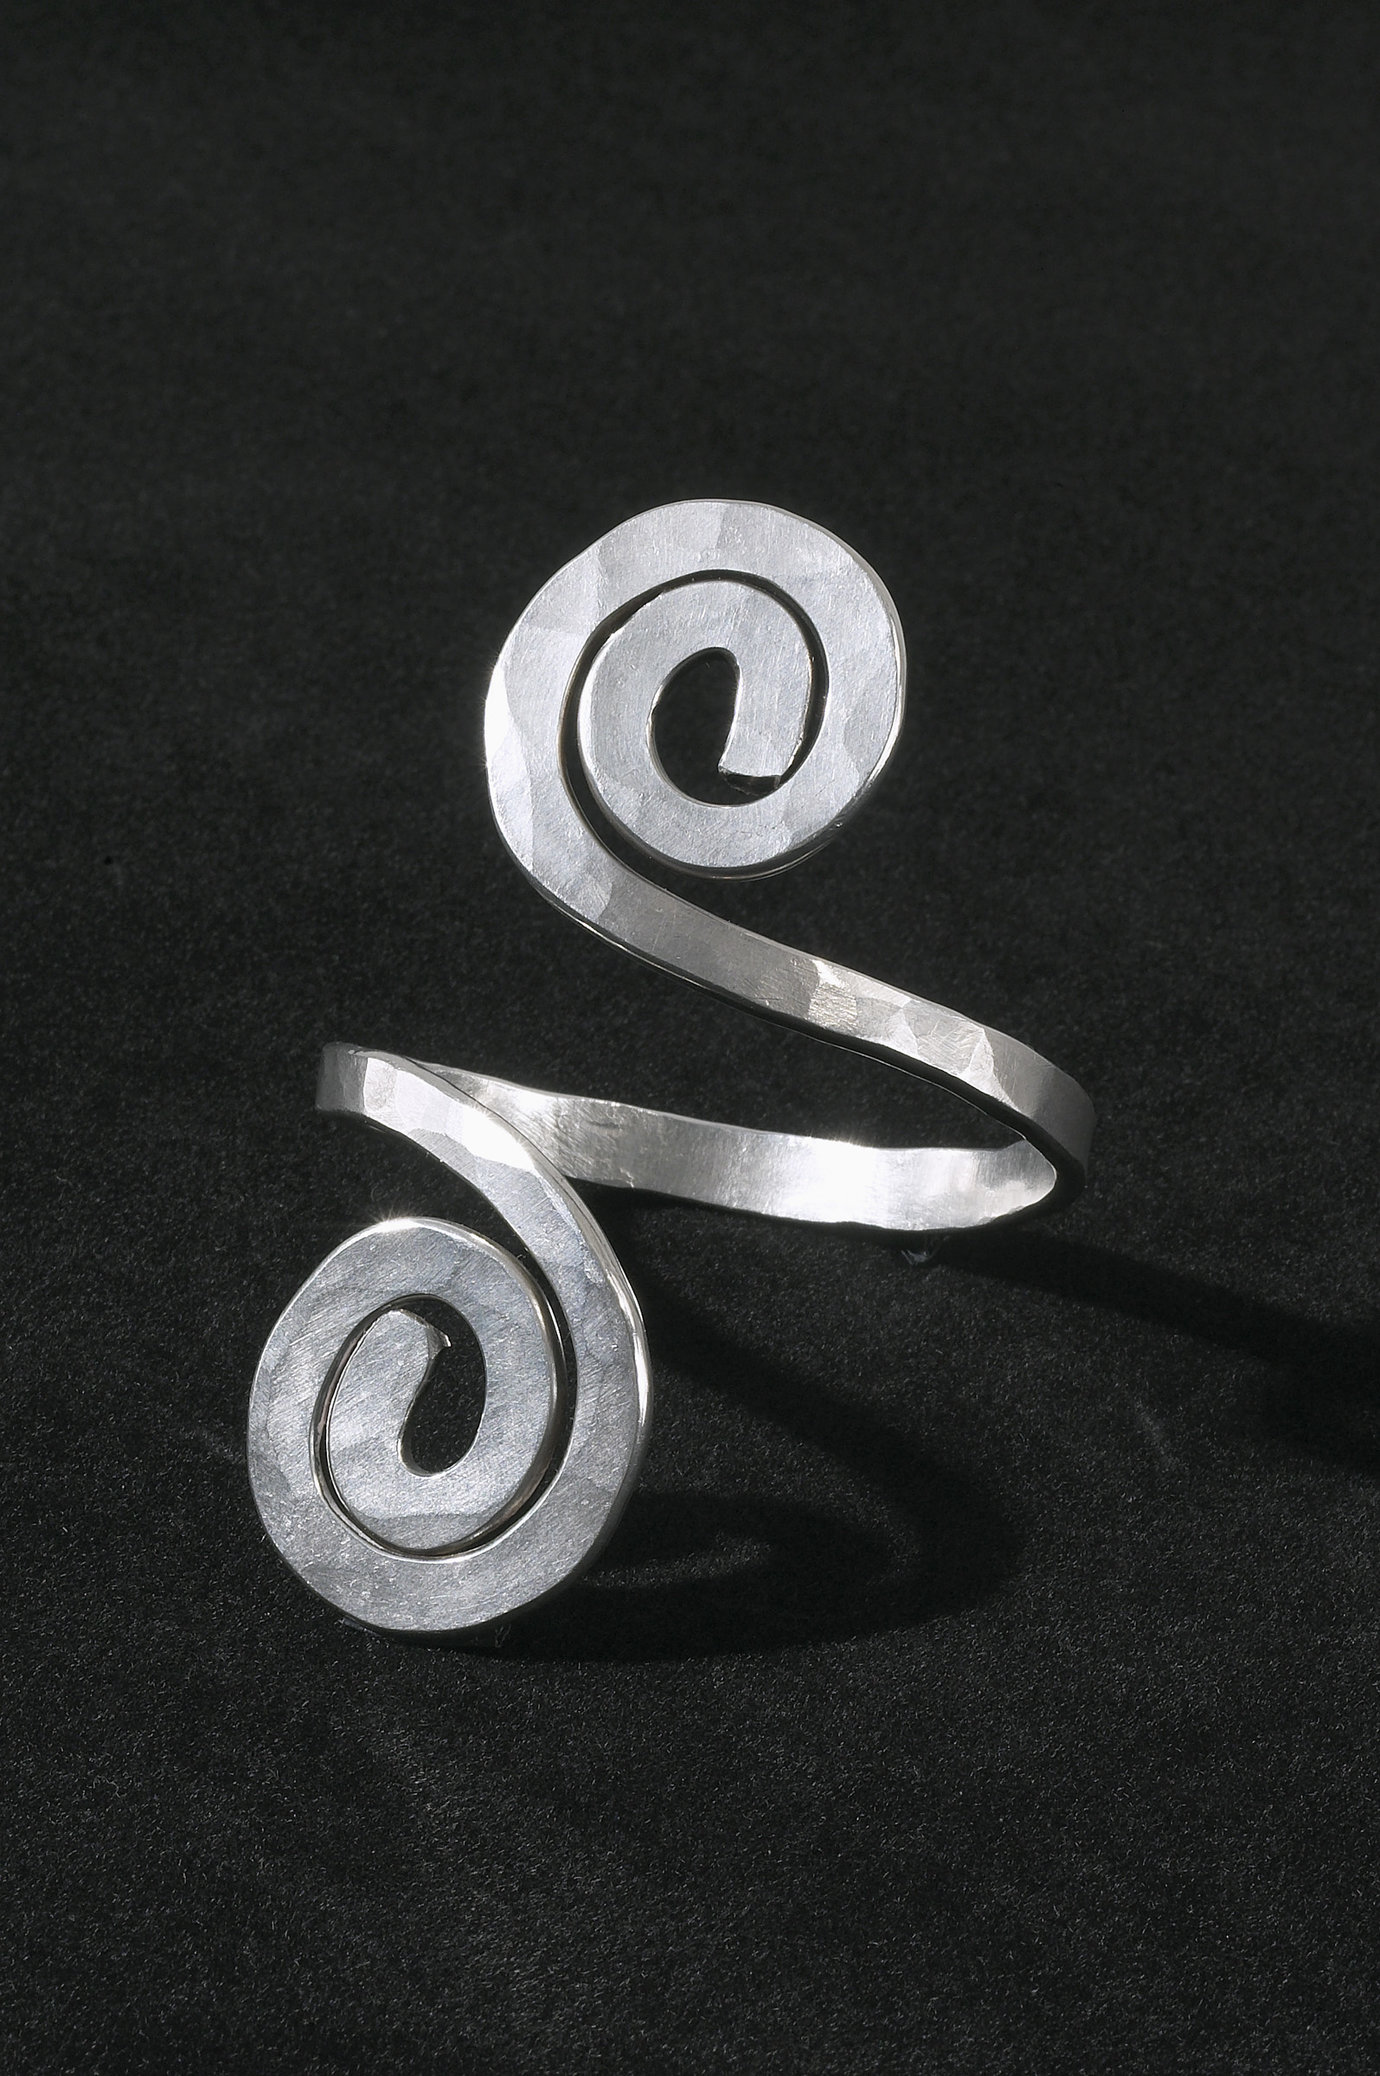 ", c. 1945. Sterling silver, 3-5/8 x 2-3/4 x 2-3/4"" (9.2 x 7 x 7 cm)."